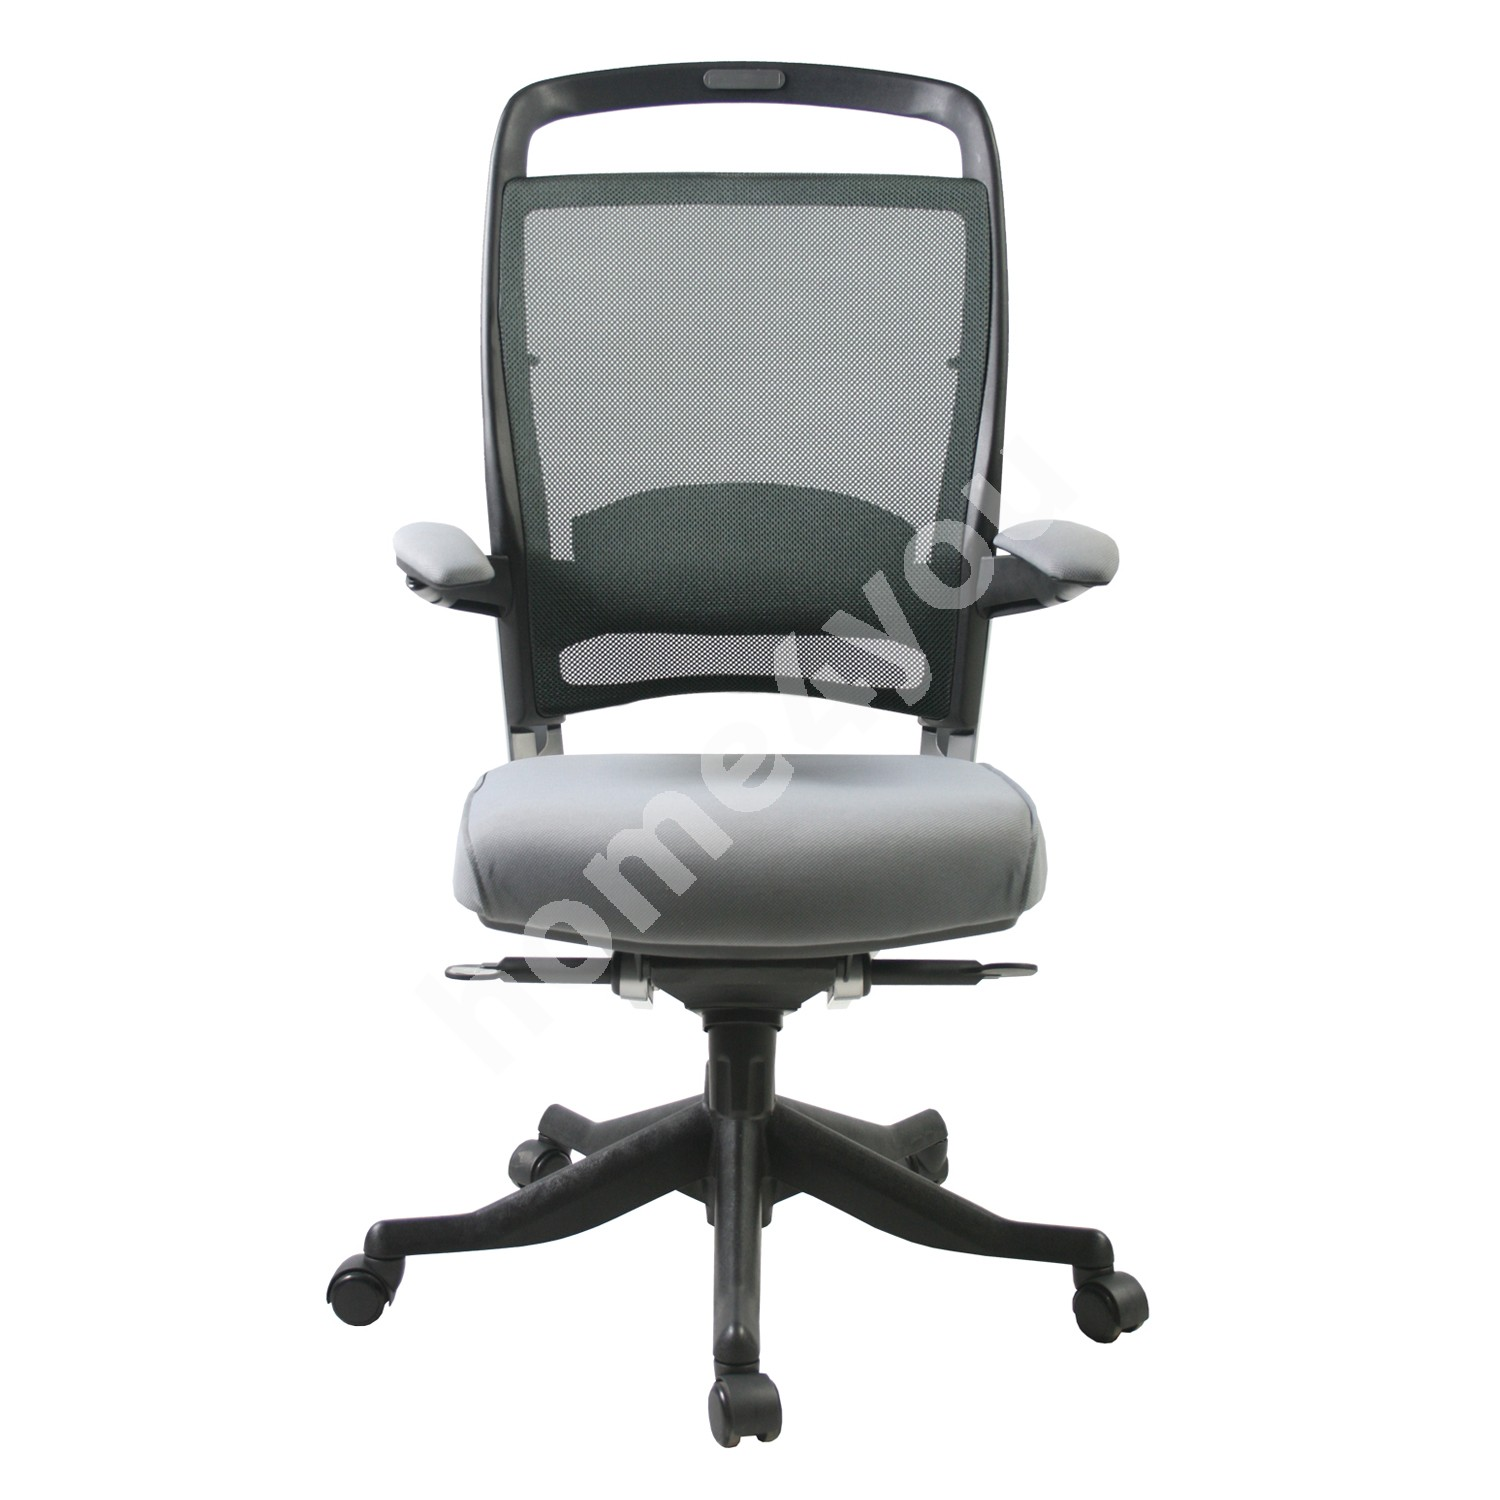 Task chair FULKRUM 48xD46xH102-108cm, seat: fabric, back rest: mesh, color: grey